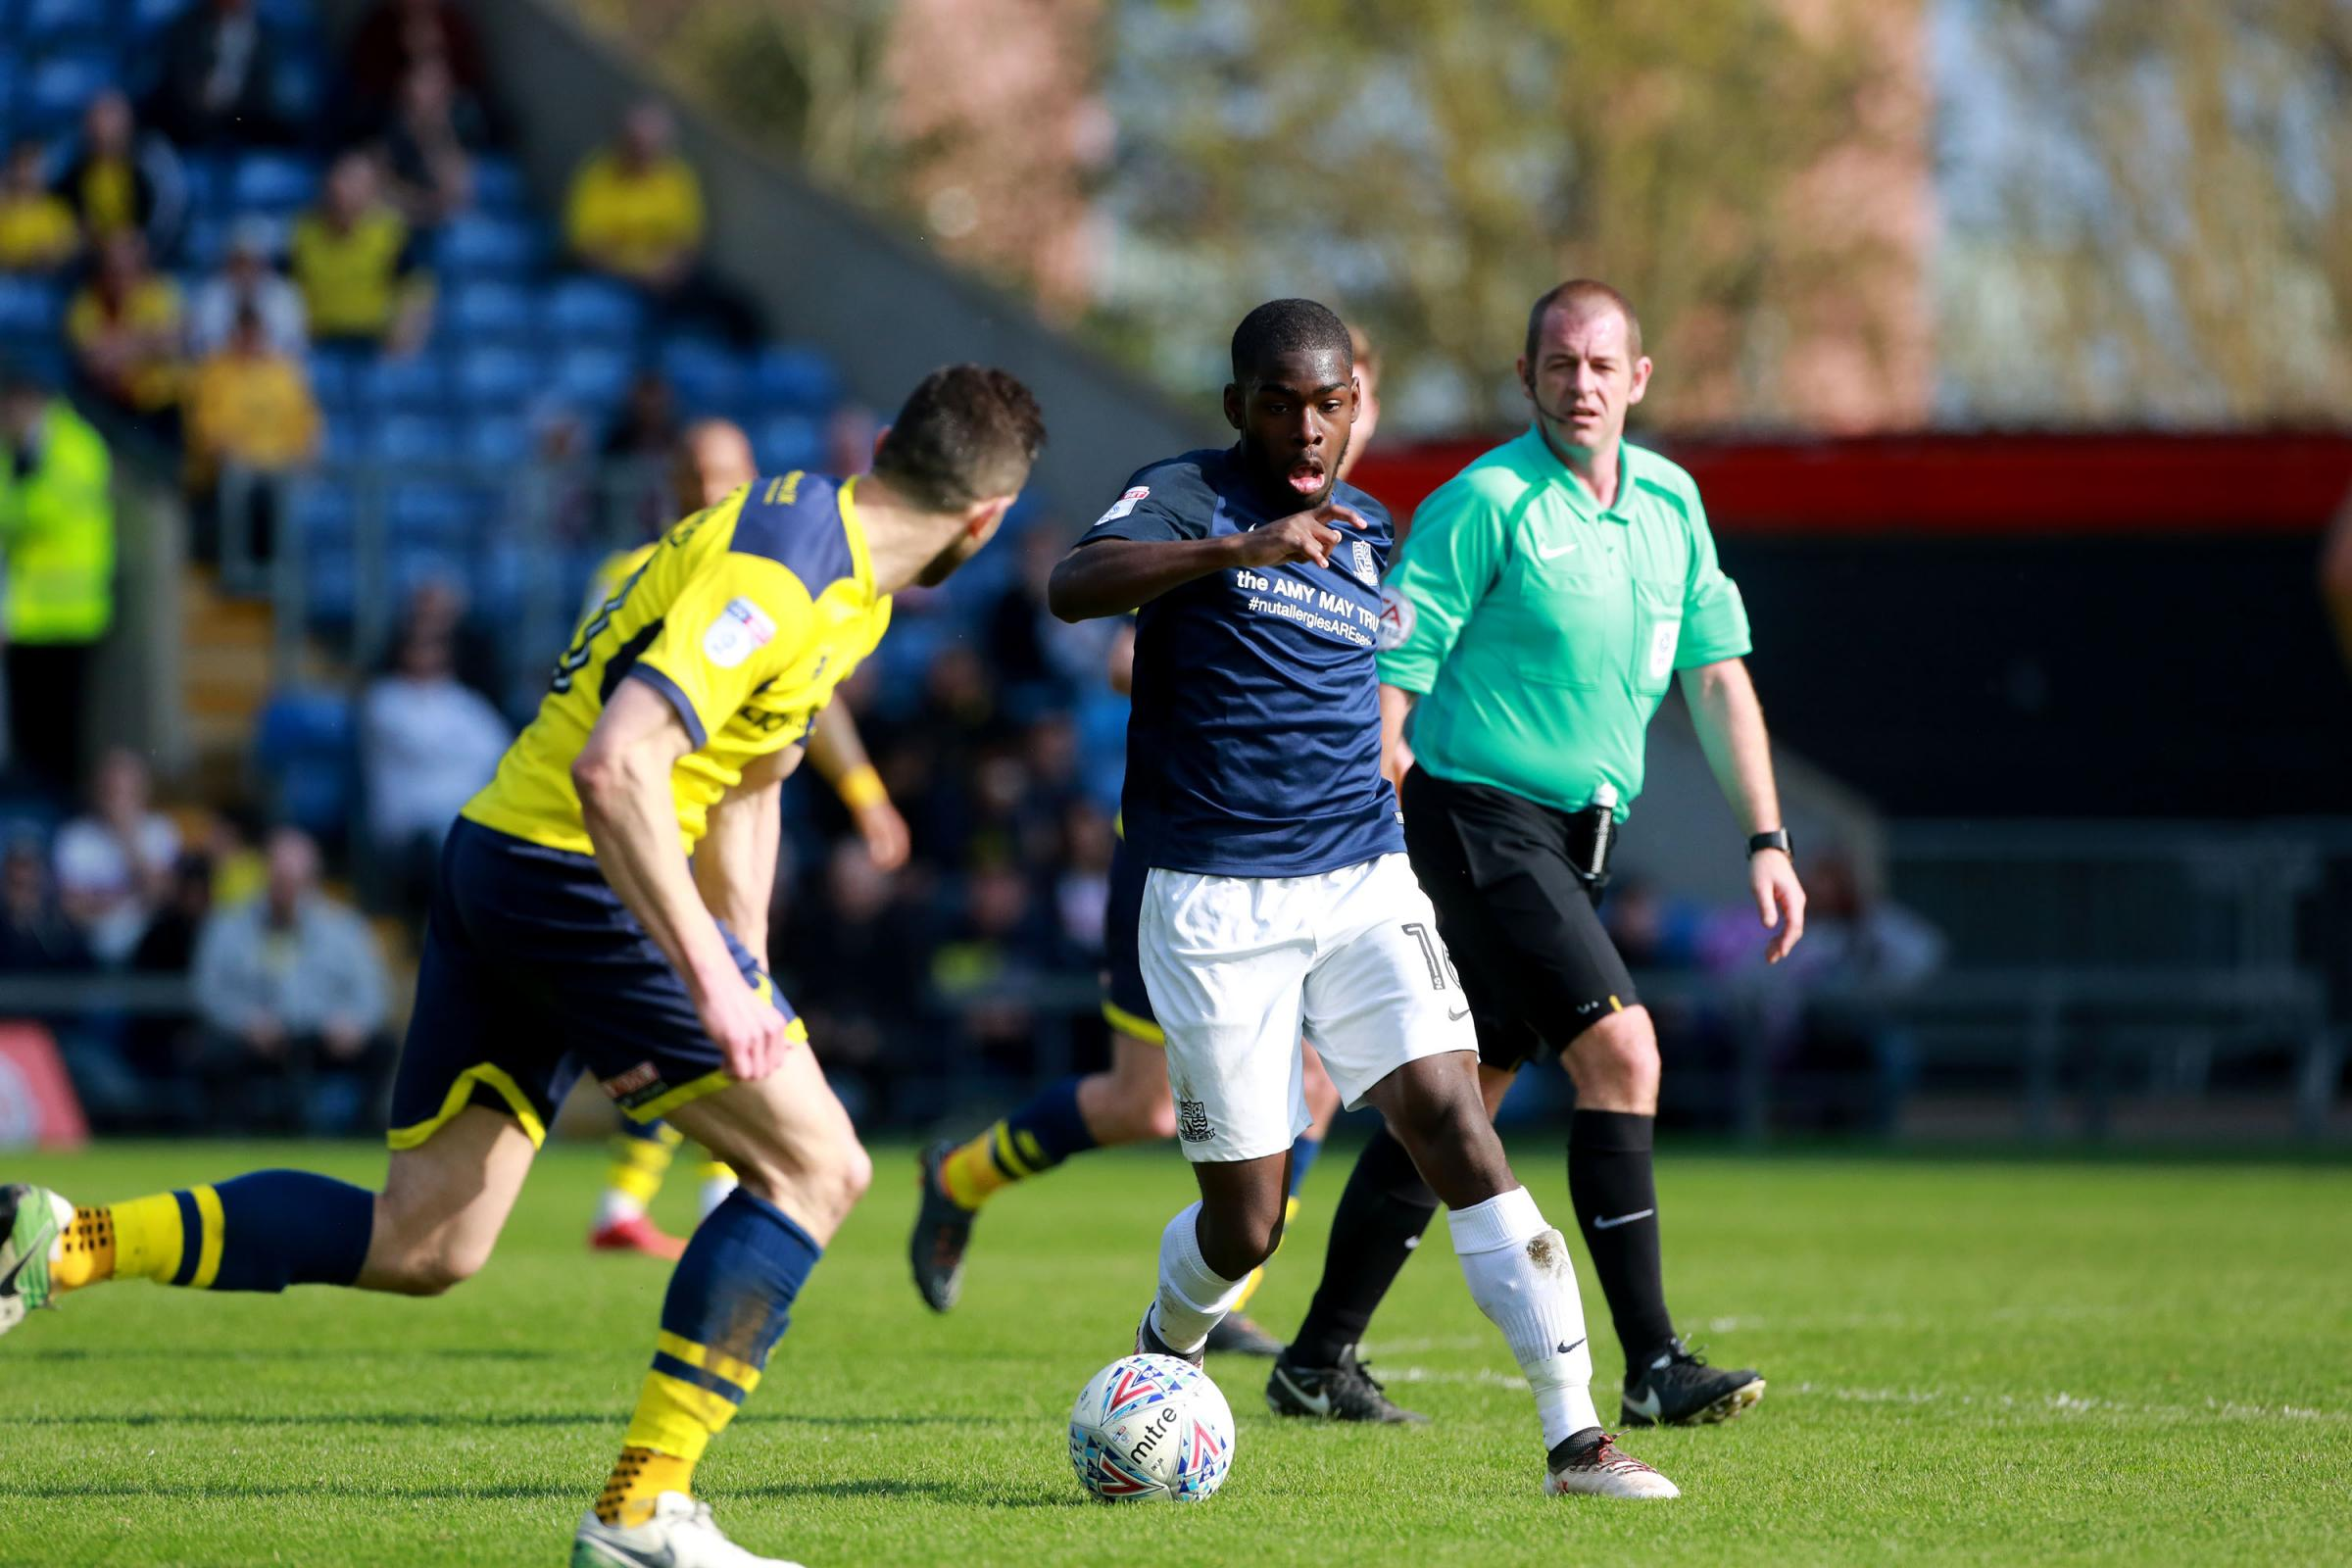 Back in action - Southend United midfielder Dru Yearwood